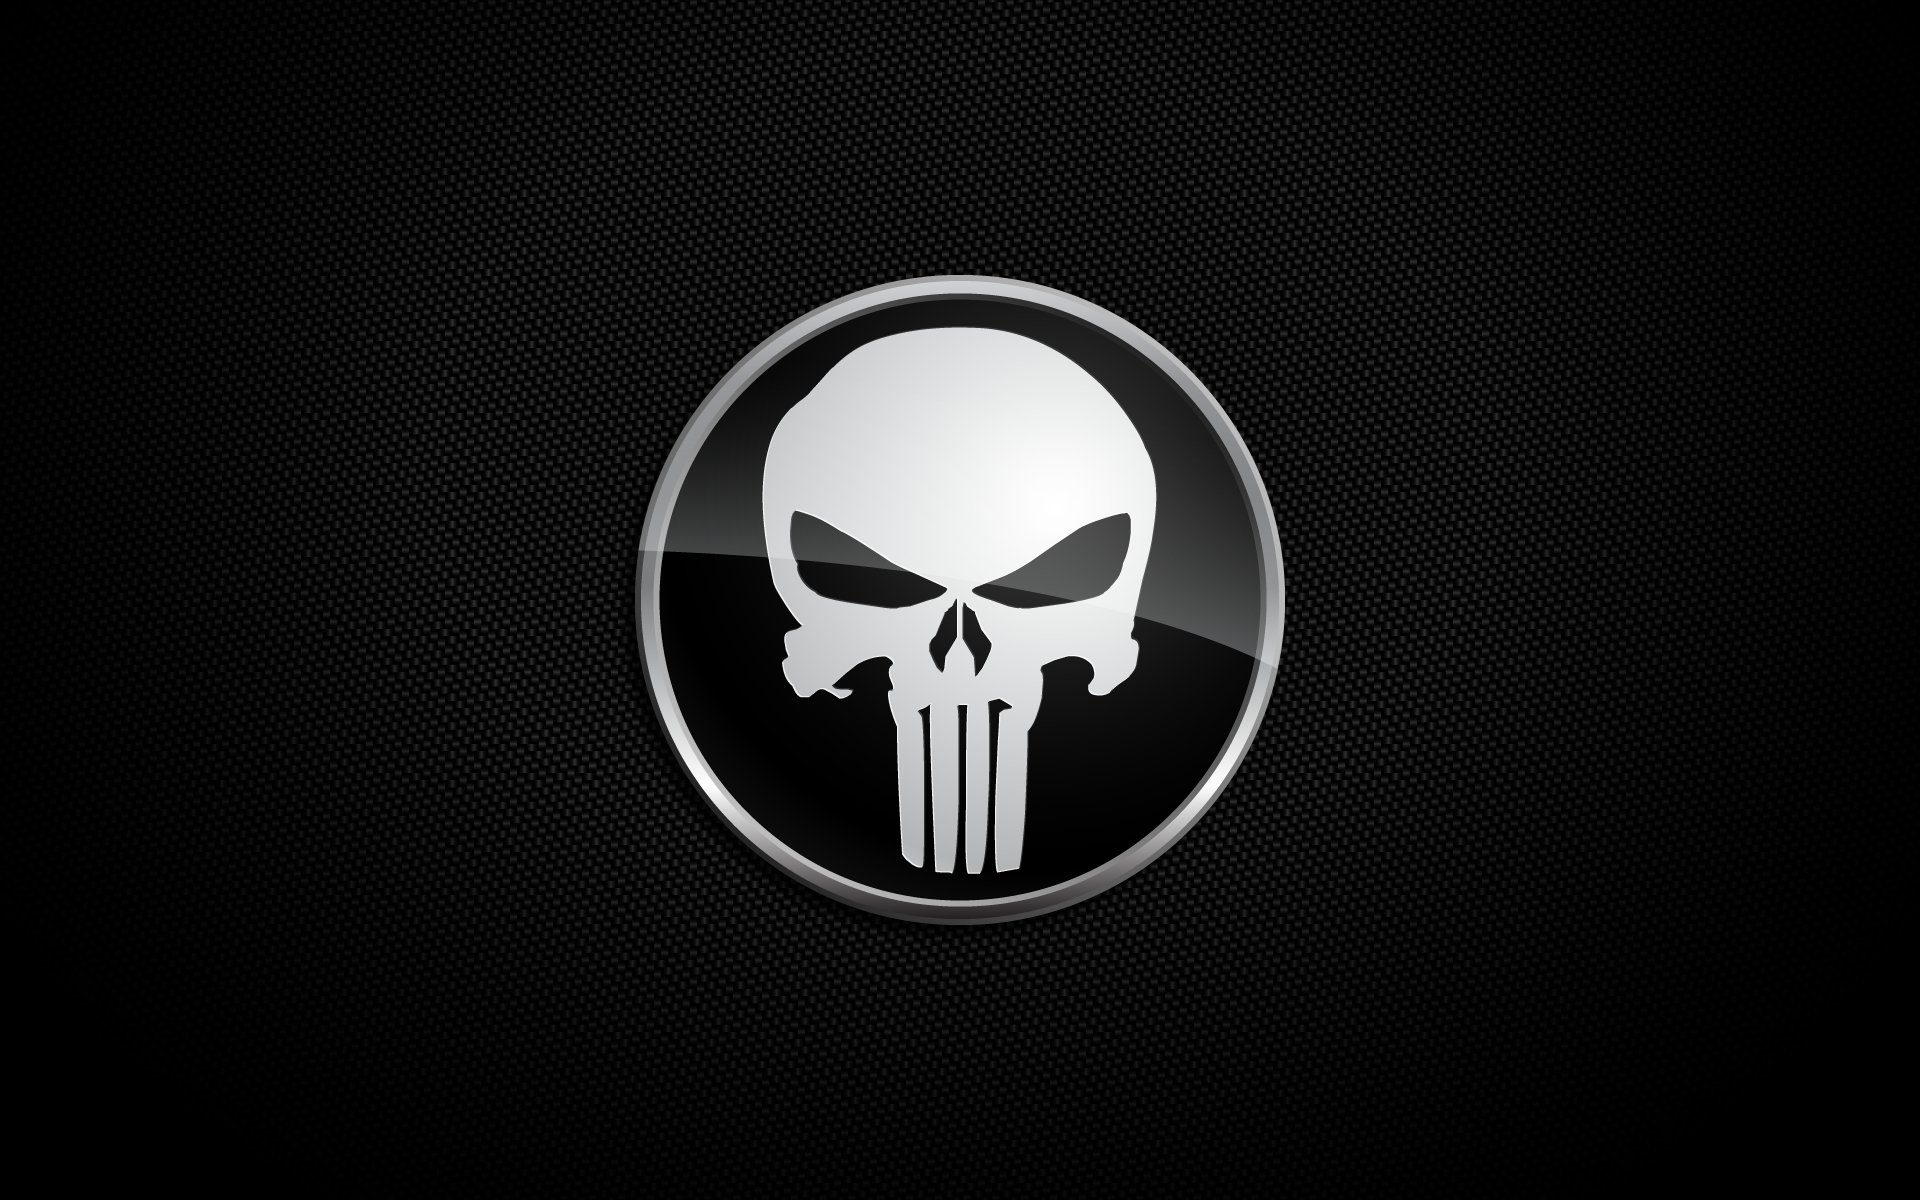 178 The Punisher HD Wallpapers | Backgrounds - Wallpaper Abyss